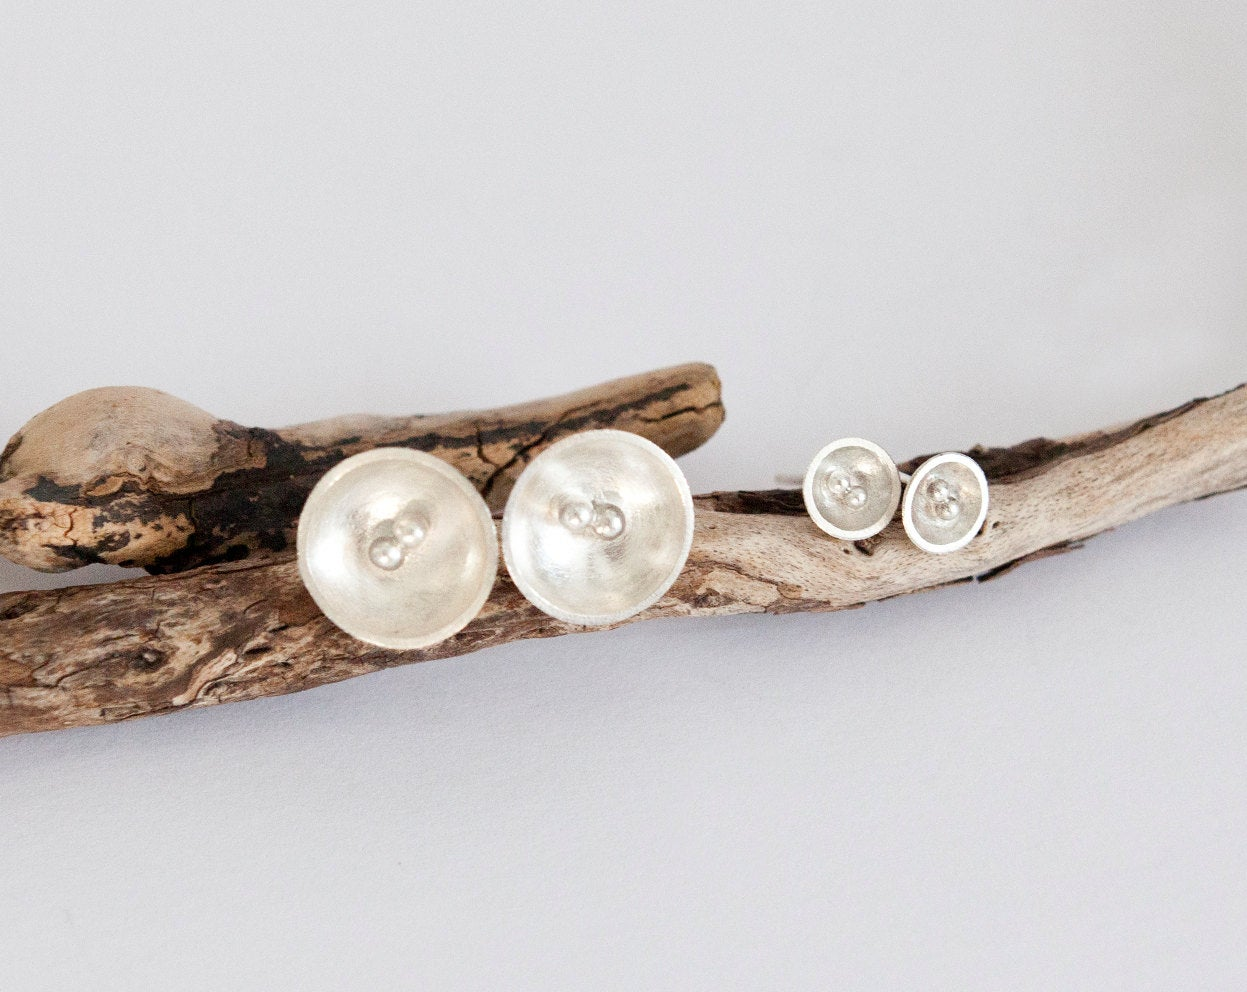 Tiny silver bowl earrings with little balls